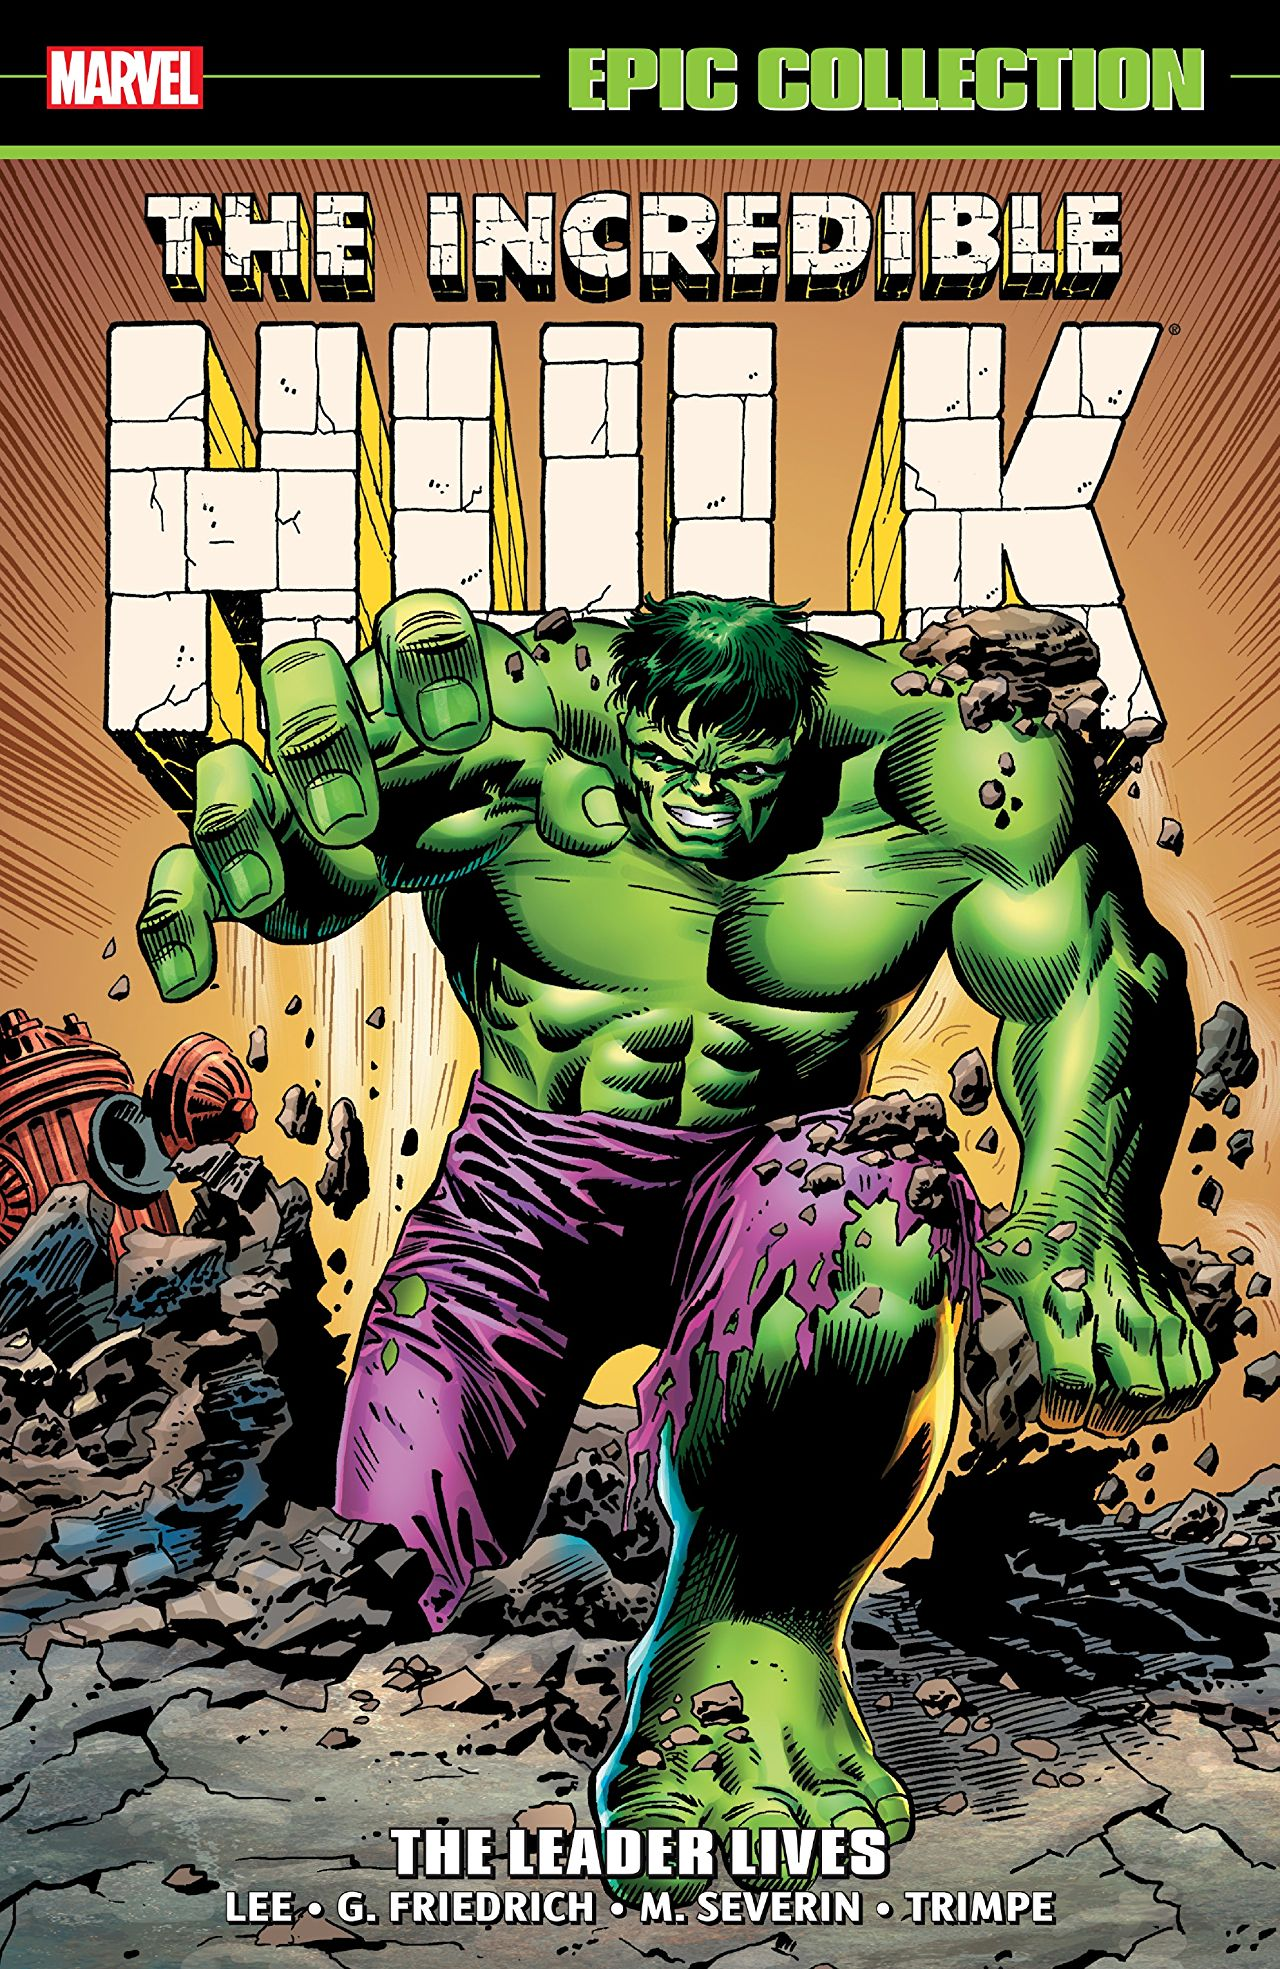 3 Reasons Why: 'Incredible Hulk Epic Collection: The Leader Lives' captures an important time for the Hulk